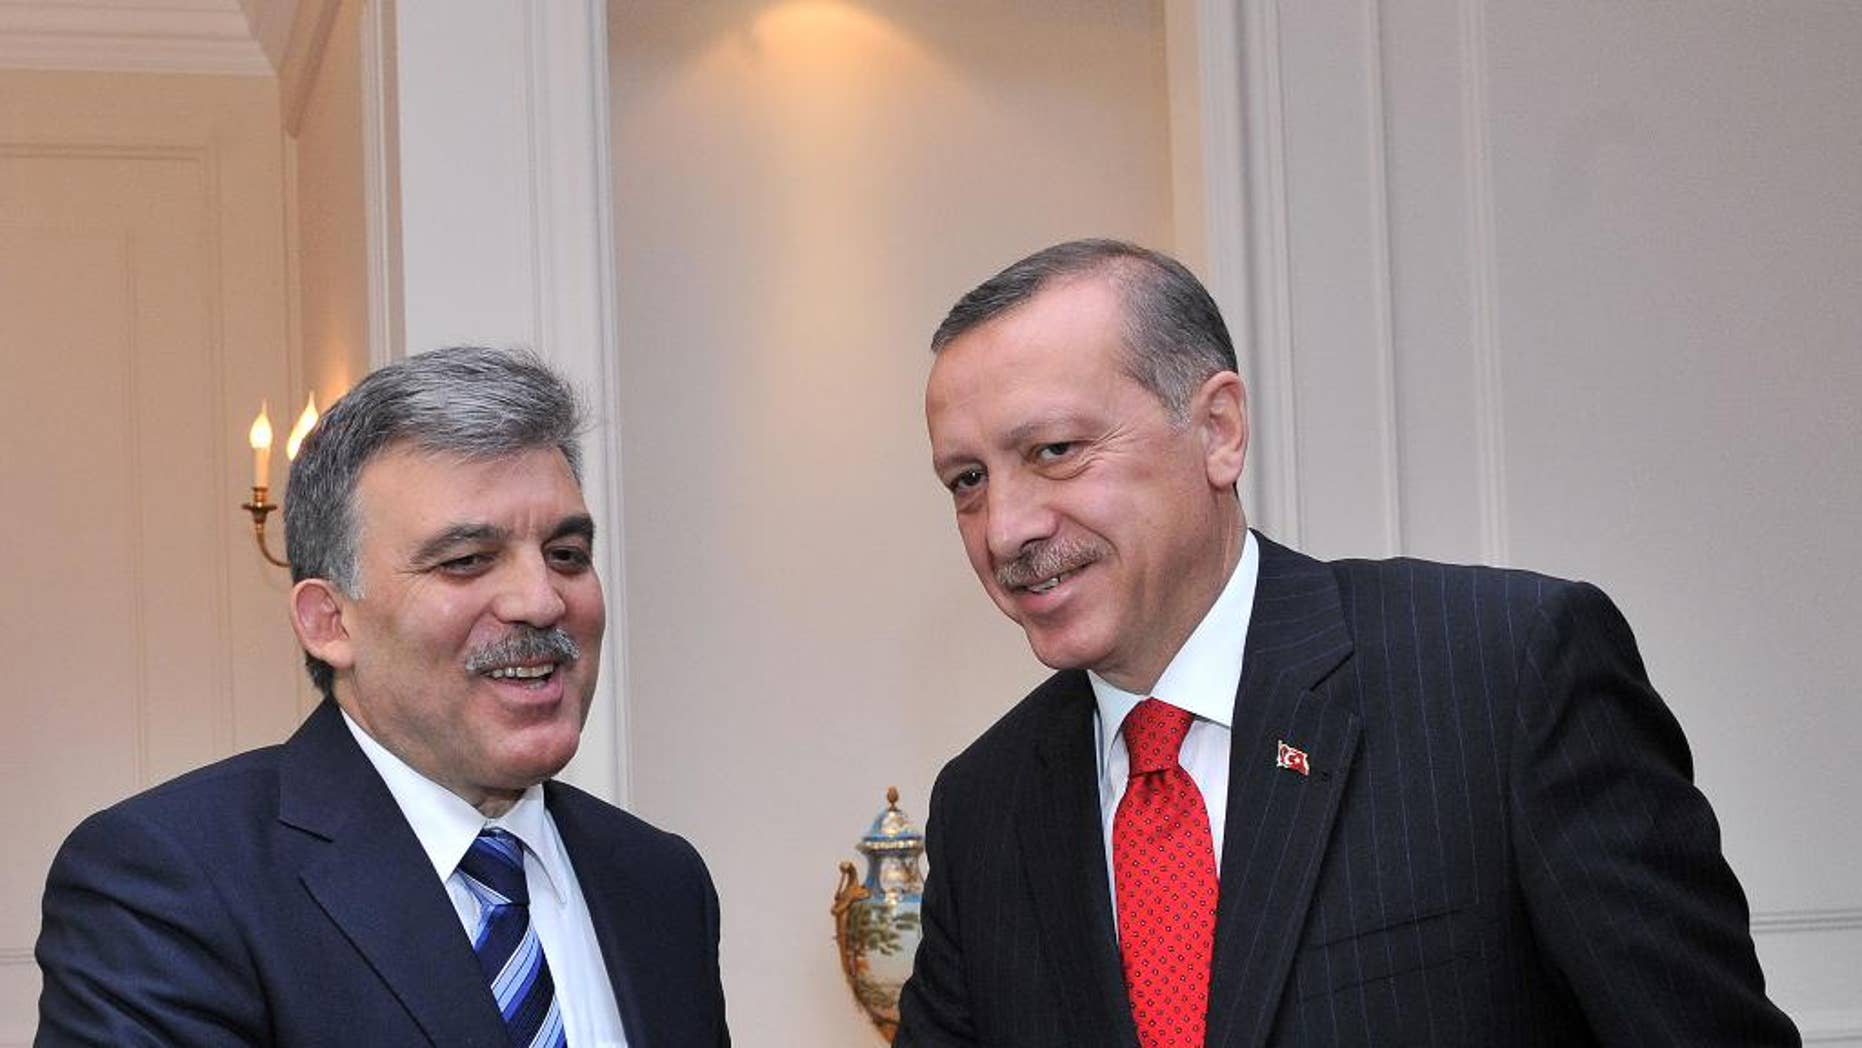 FILE - In this Tuesday, June 14, 2011 photo released by the Turkish Presidency Press Service, President Abdullah Gul, left, welcomes Prime Minister Recep Tayyip Erdogan in Ankara, Turkey. Turkish President Abdullah Gul has signaled that he doesn't want to swap jobs with Prime Minister Recep Tayyip Erdogan when the presidential term ends later this year. Gul said Friday he opposes a model similar to that of Russia where the president and prime minister have traded places and one has ruled in the other's shadow. Gul suggested he would not oppose Erdogan if he chose to run for president in the election in August. Erdogan has not made a decision about whether he will seek to become president _ a position that is largely ceremonial but does include the power to appoint the prime minister. He has said he wants a presidency with more executive powers. (AP Photo/Murat Cetinmuhurdar, Turkish Presidency Press Service, HO, file)